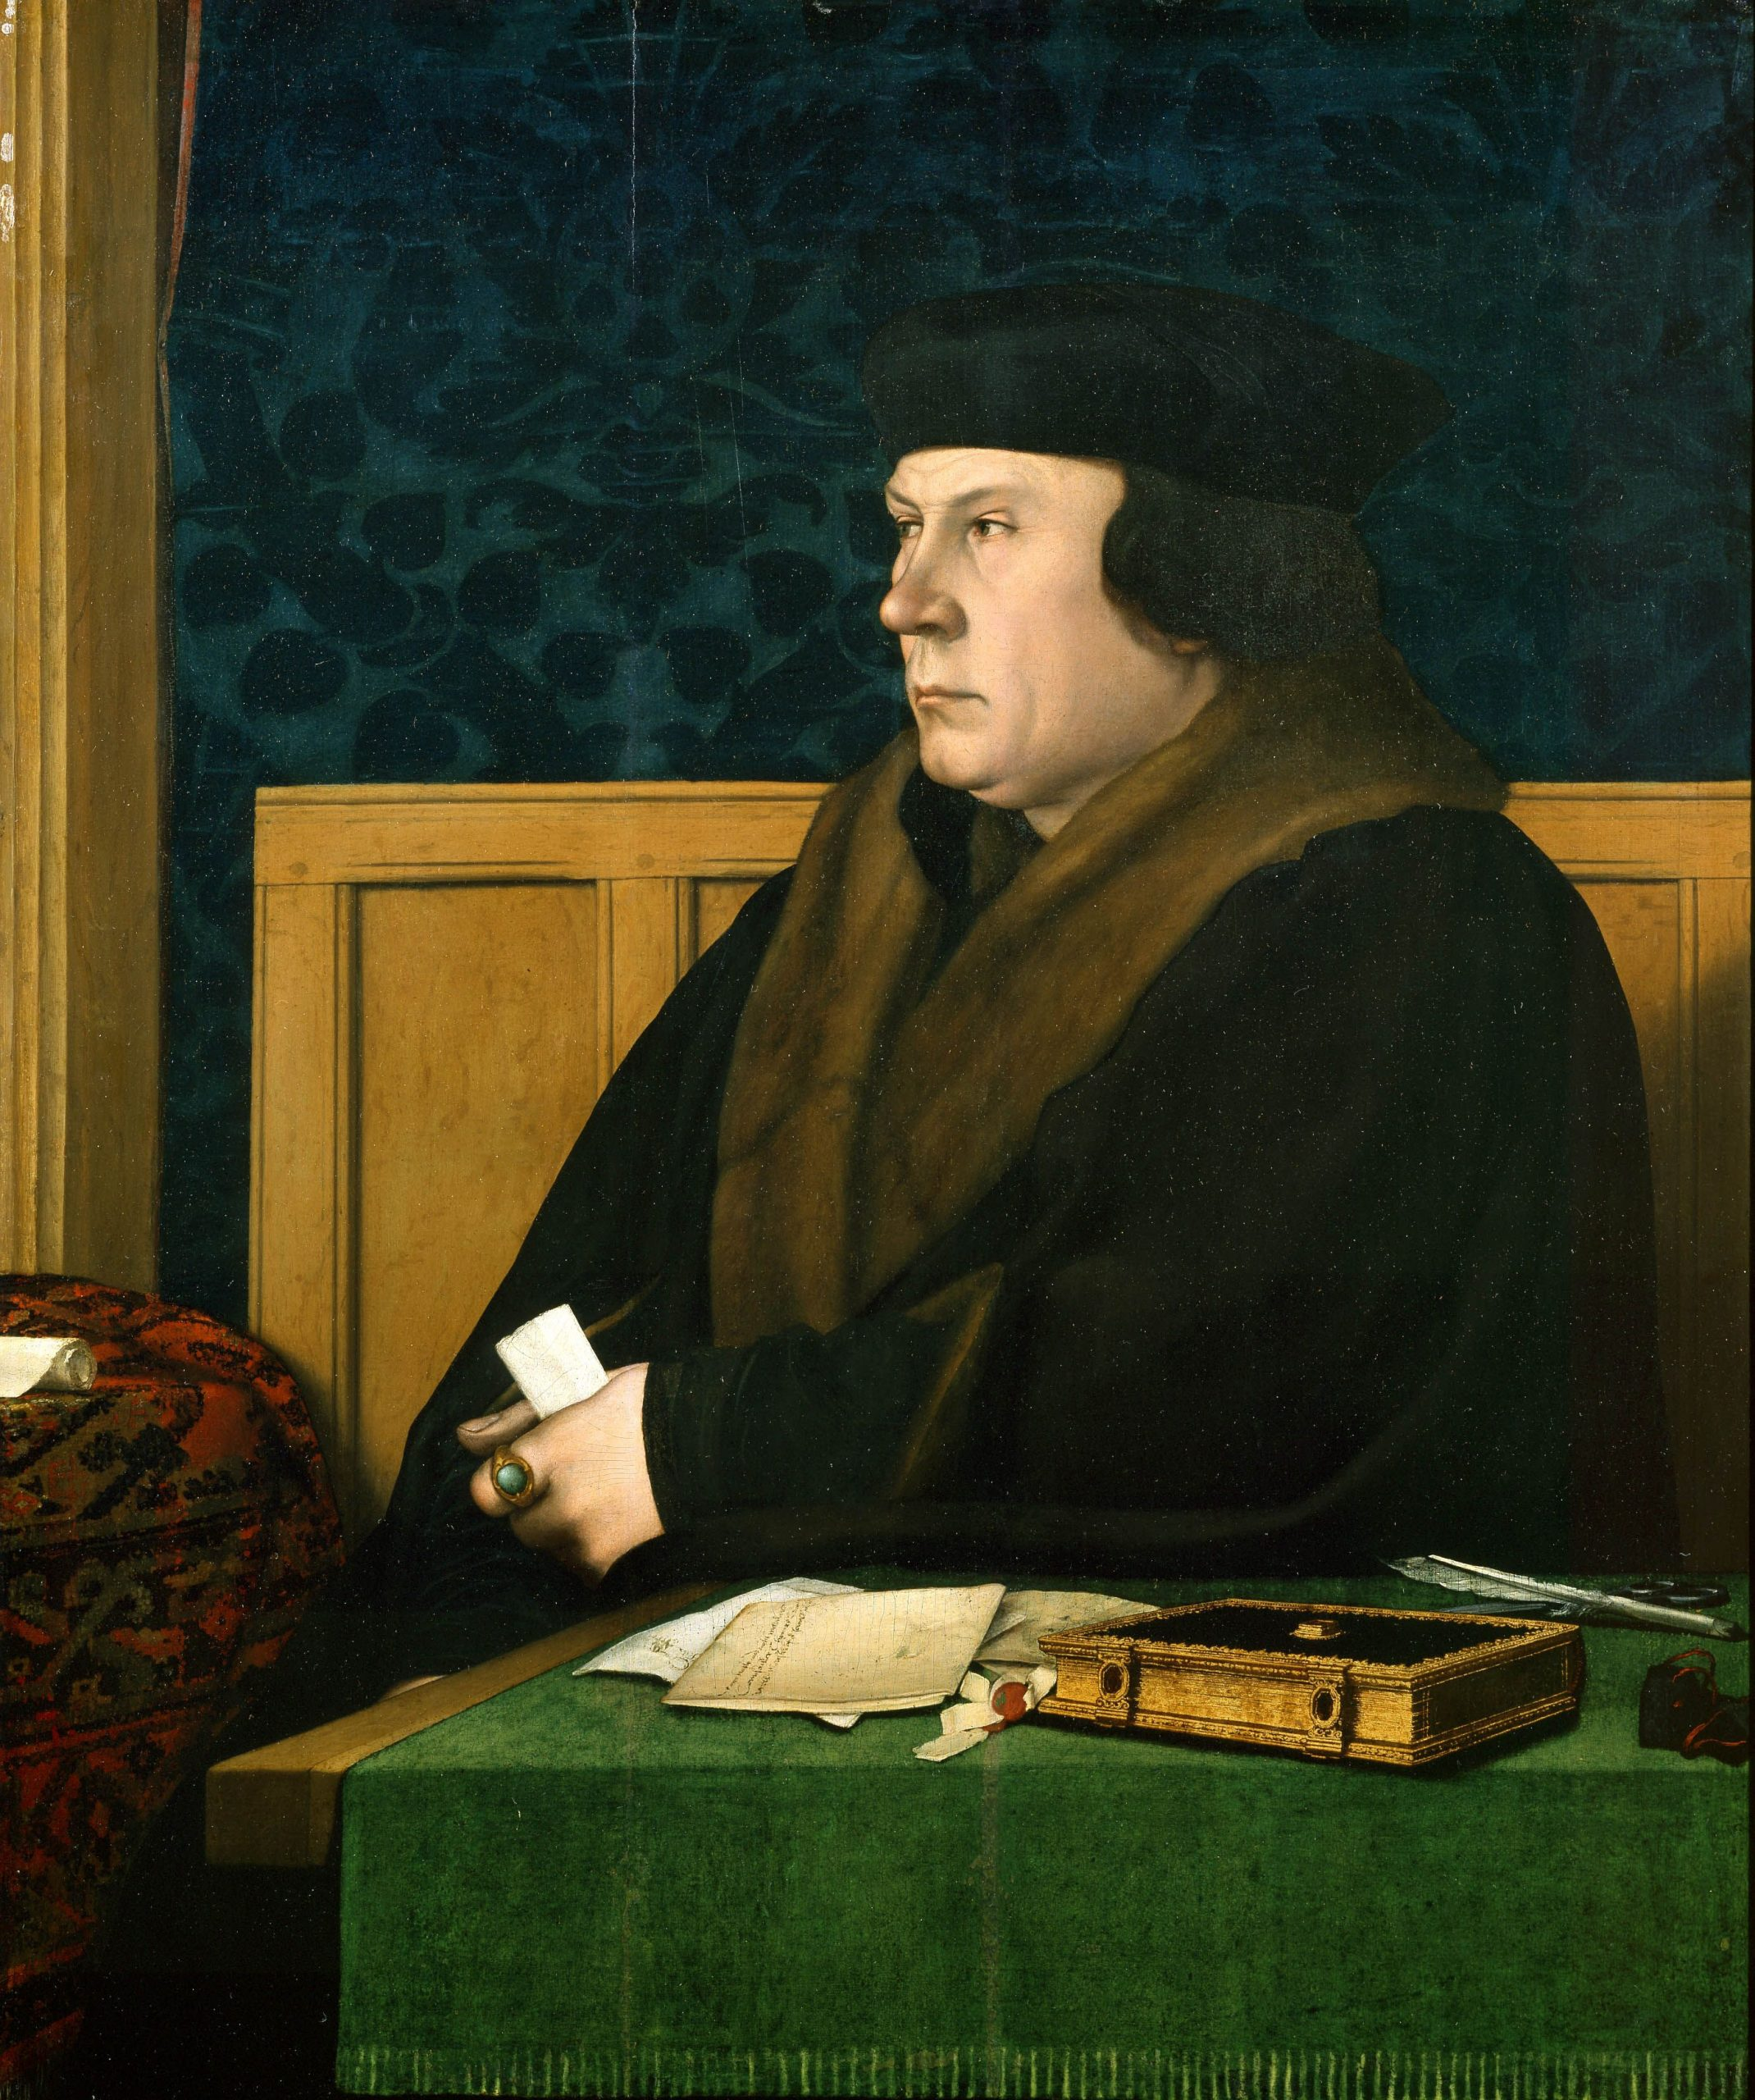 Thomas Cromwell scaled - Thomas Cromwell - A Strong Man - Quote